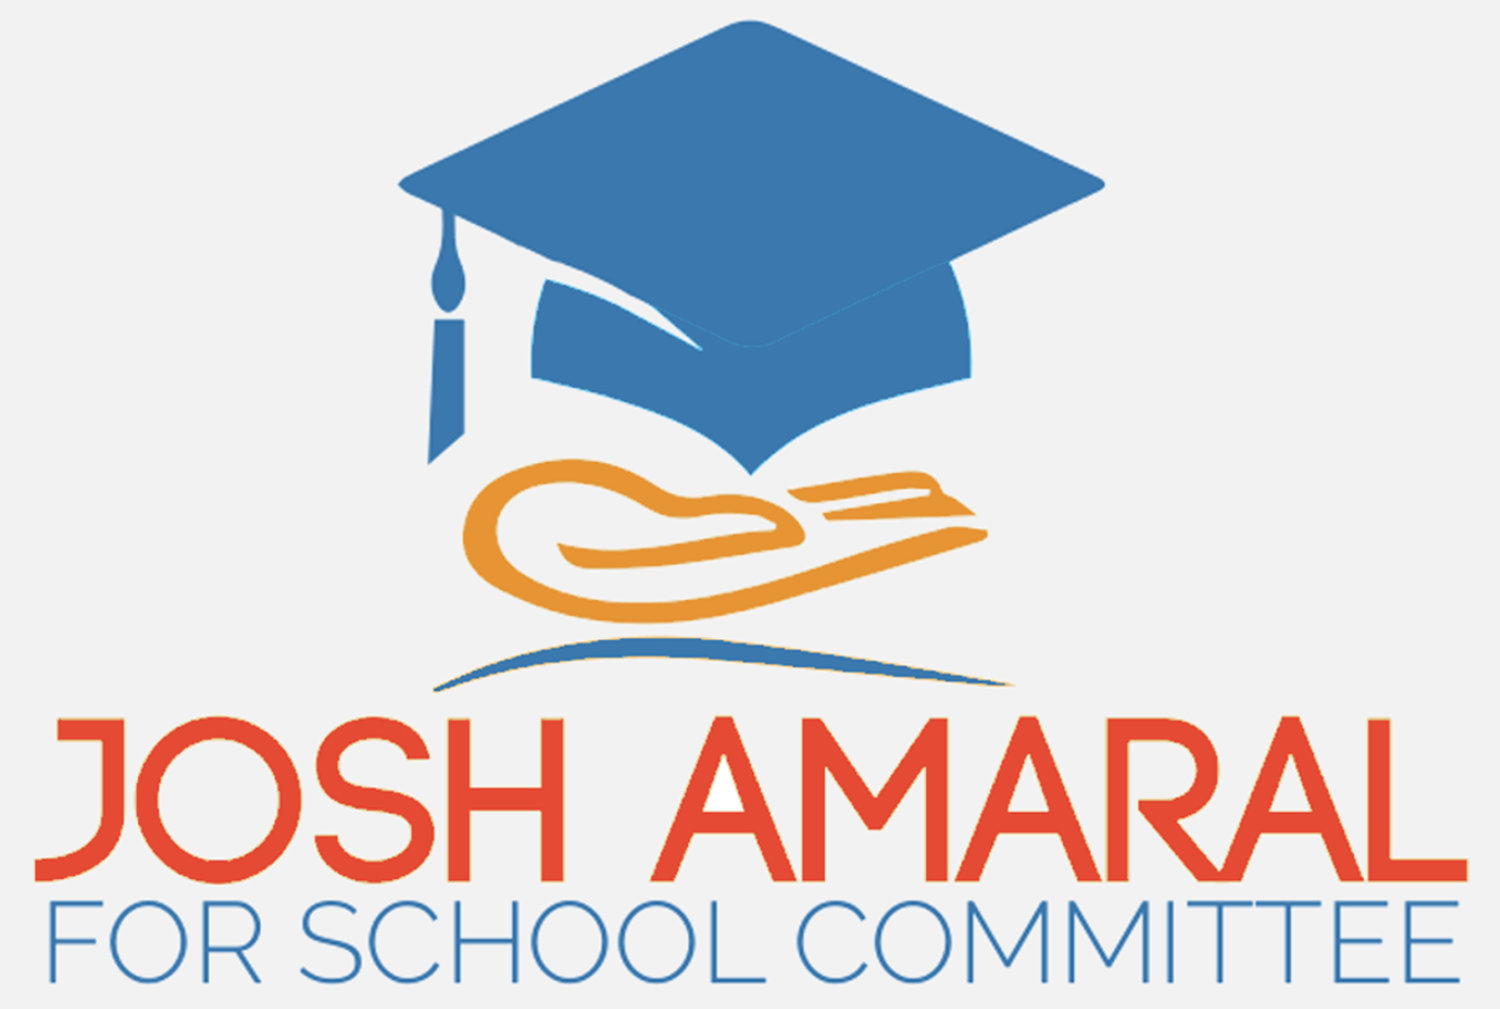 Josh Amaral for School Committee